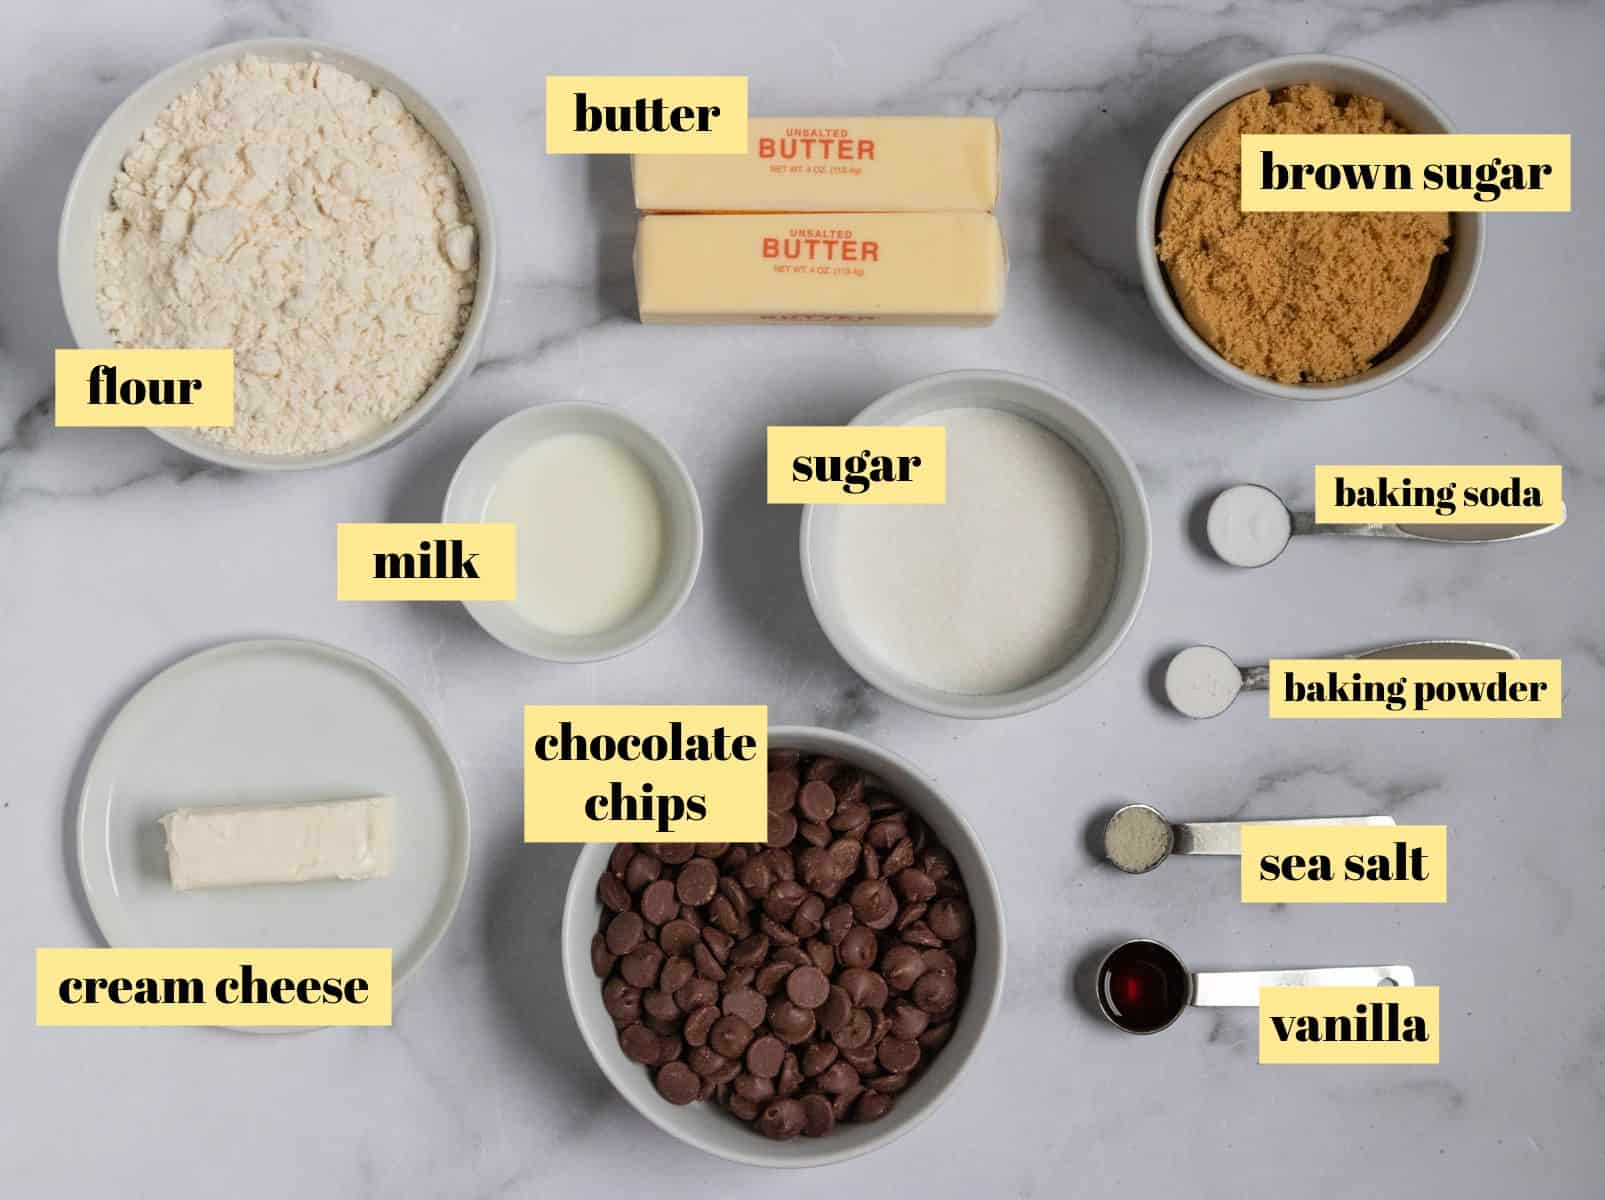 Ingredients to make eggless chocolate chip cookies.